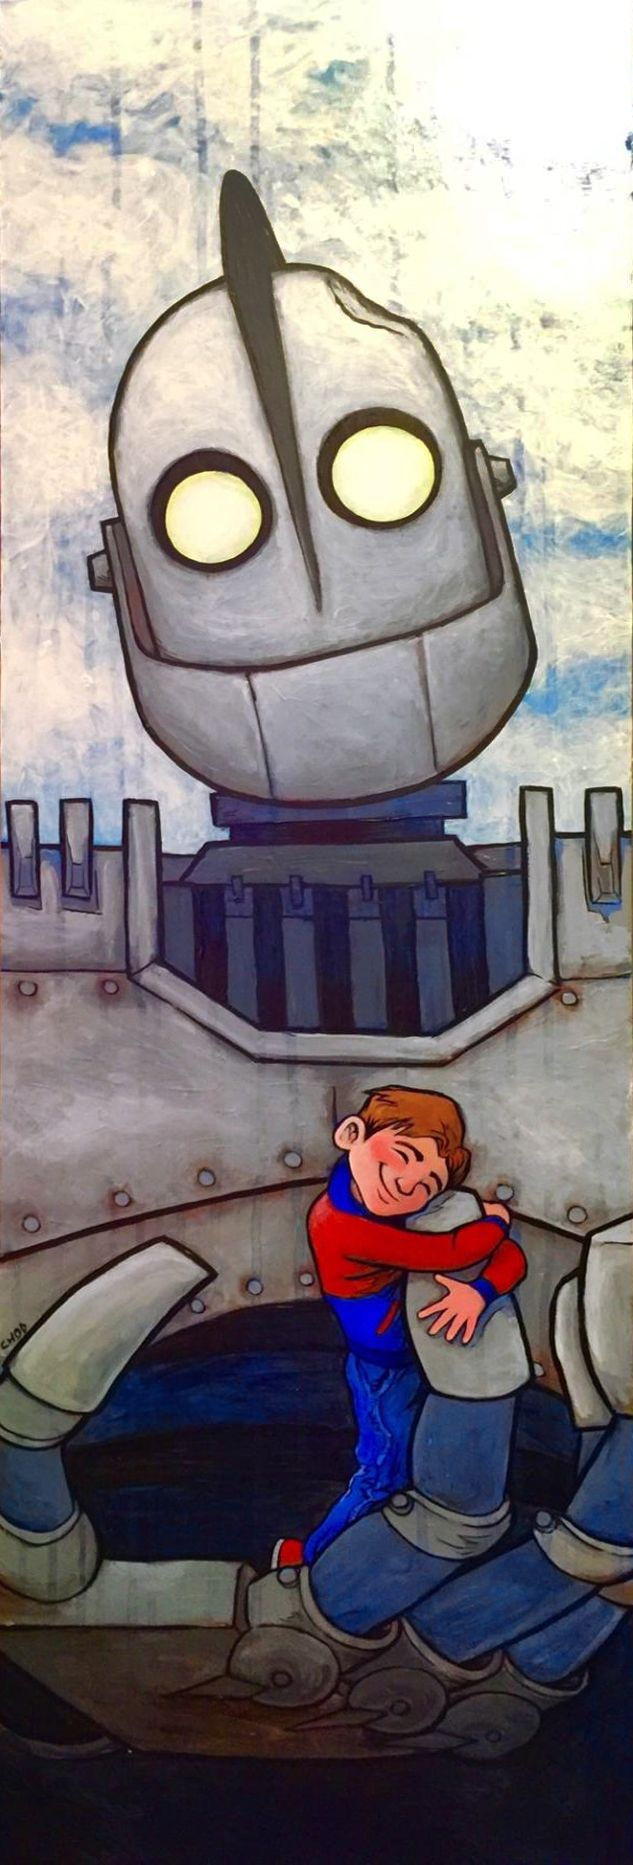 Iron Giant painting by Chad Kimes